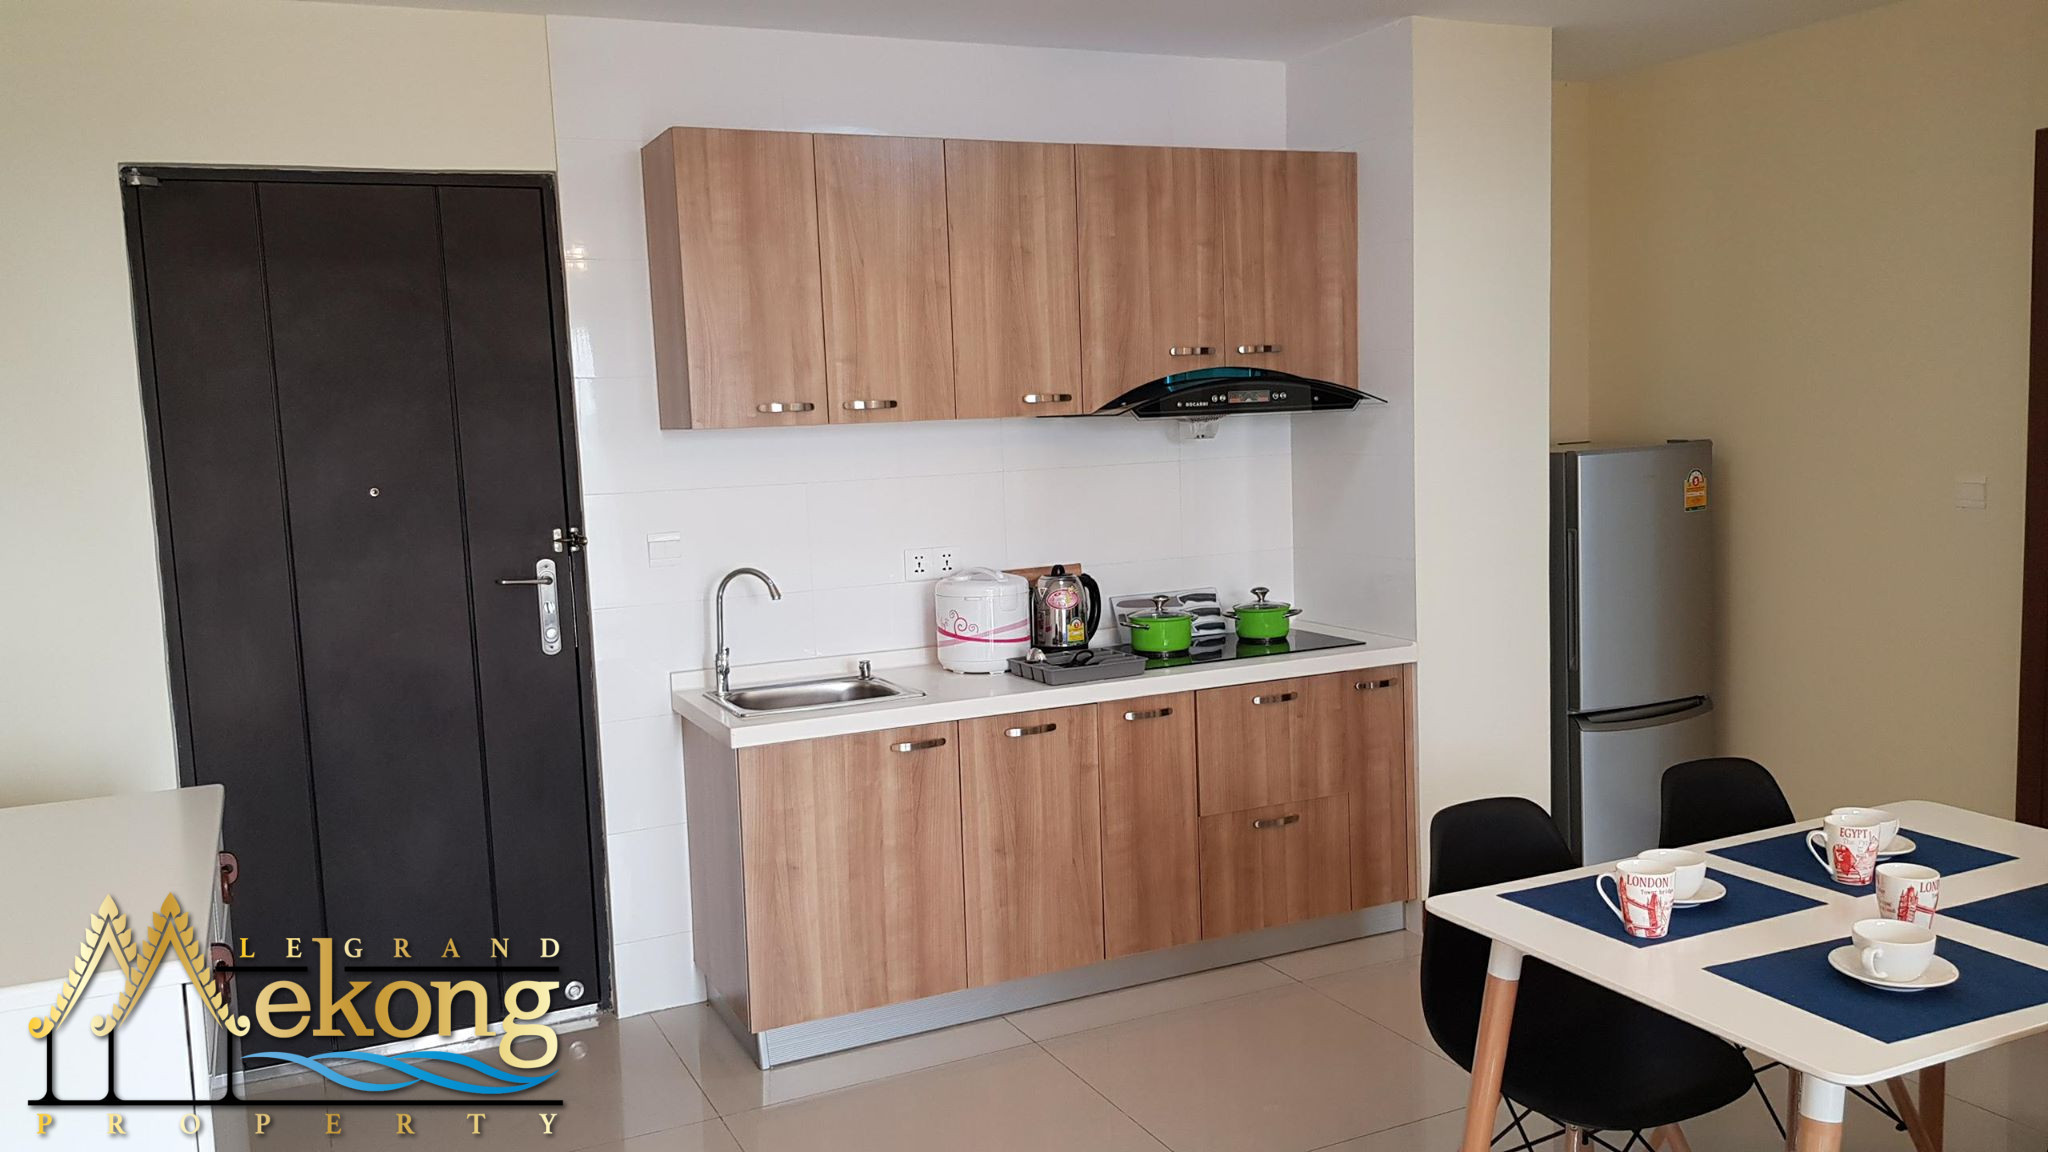 one bedroom condominium with pool and gym on Chroy Changvar | LGM307